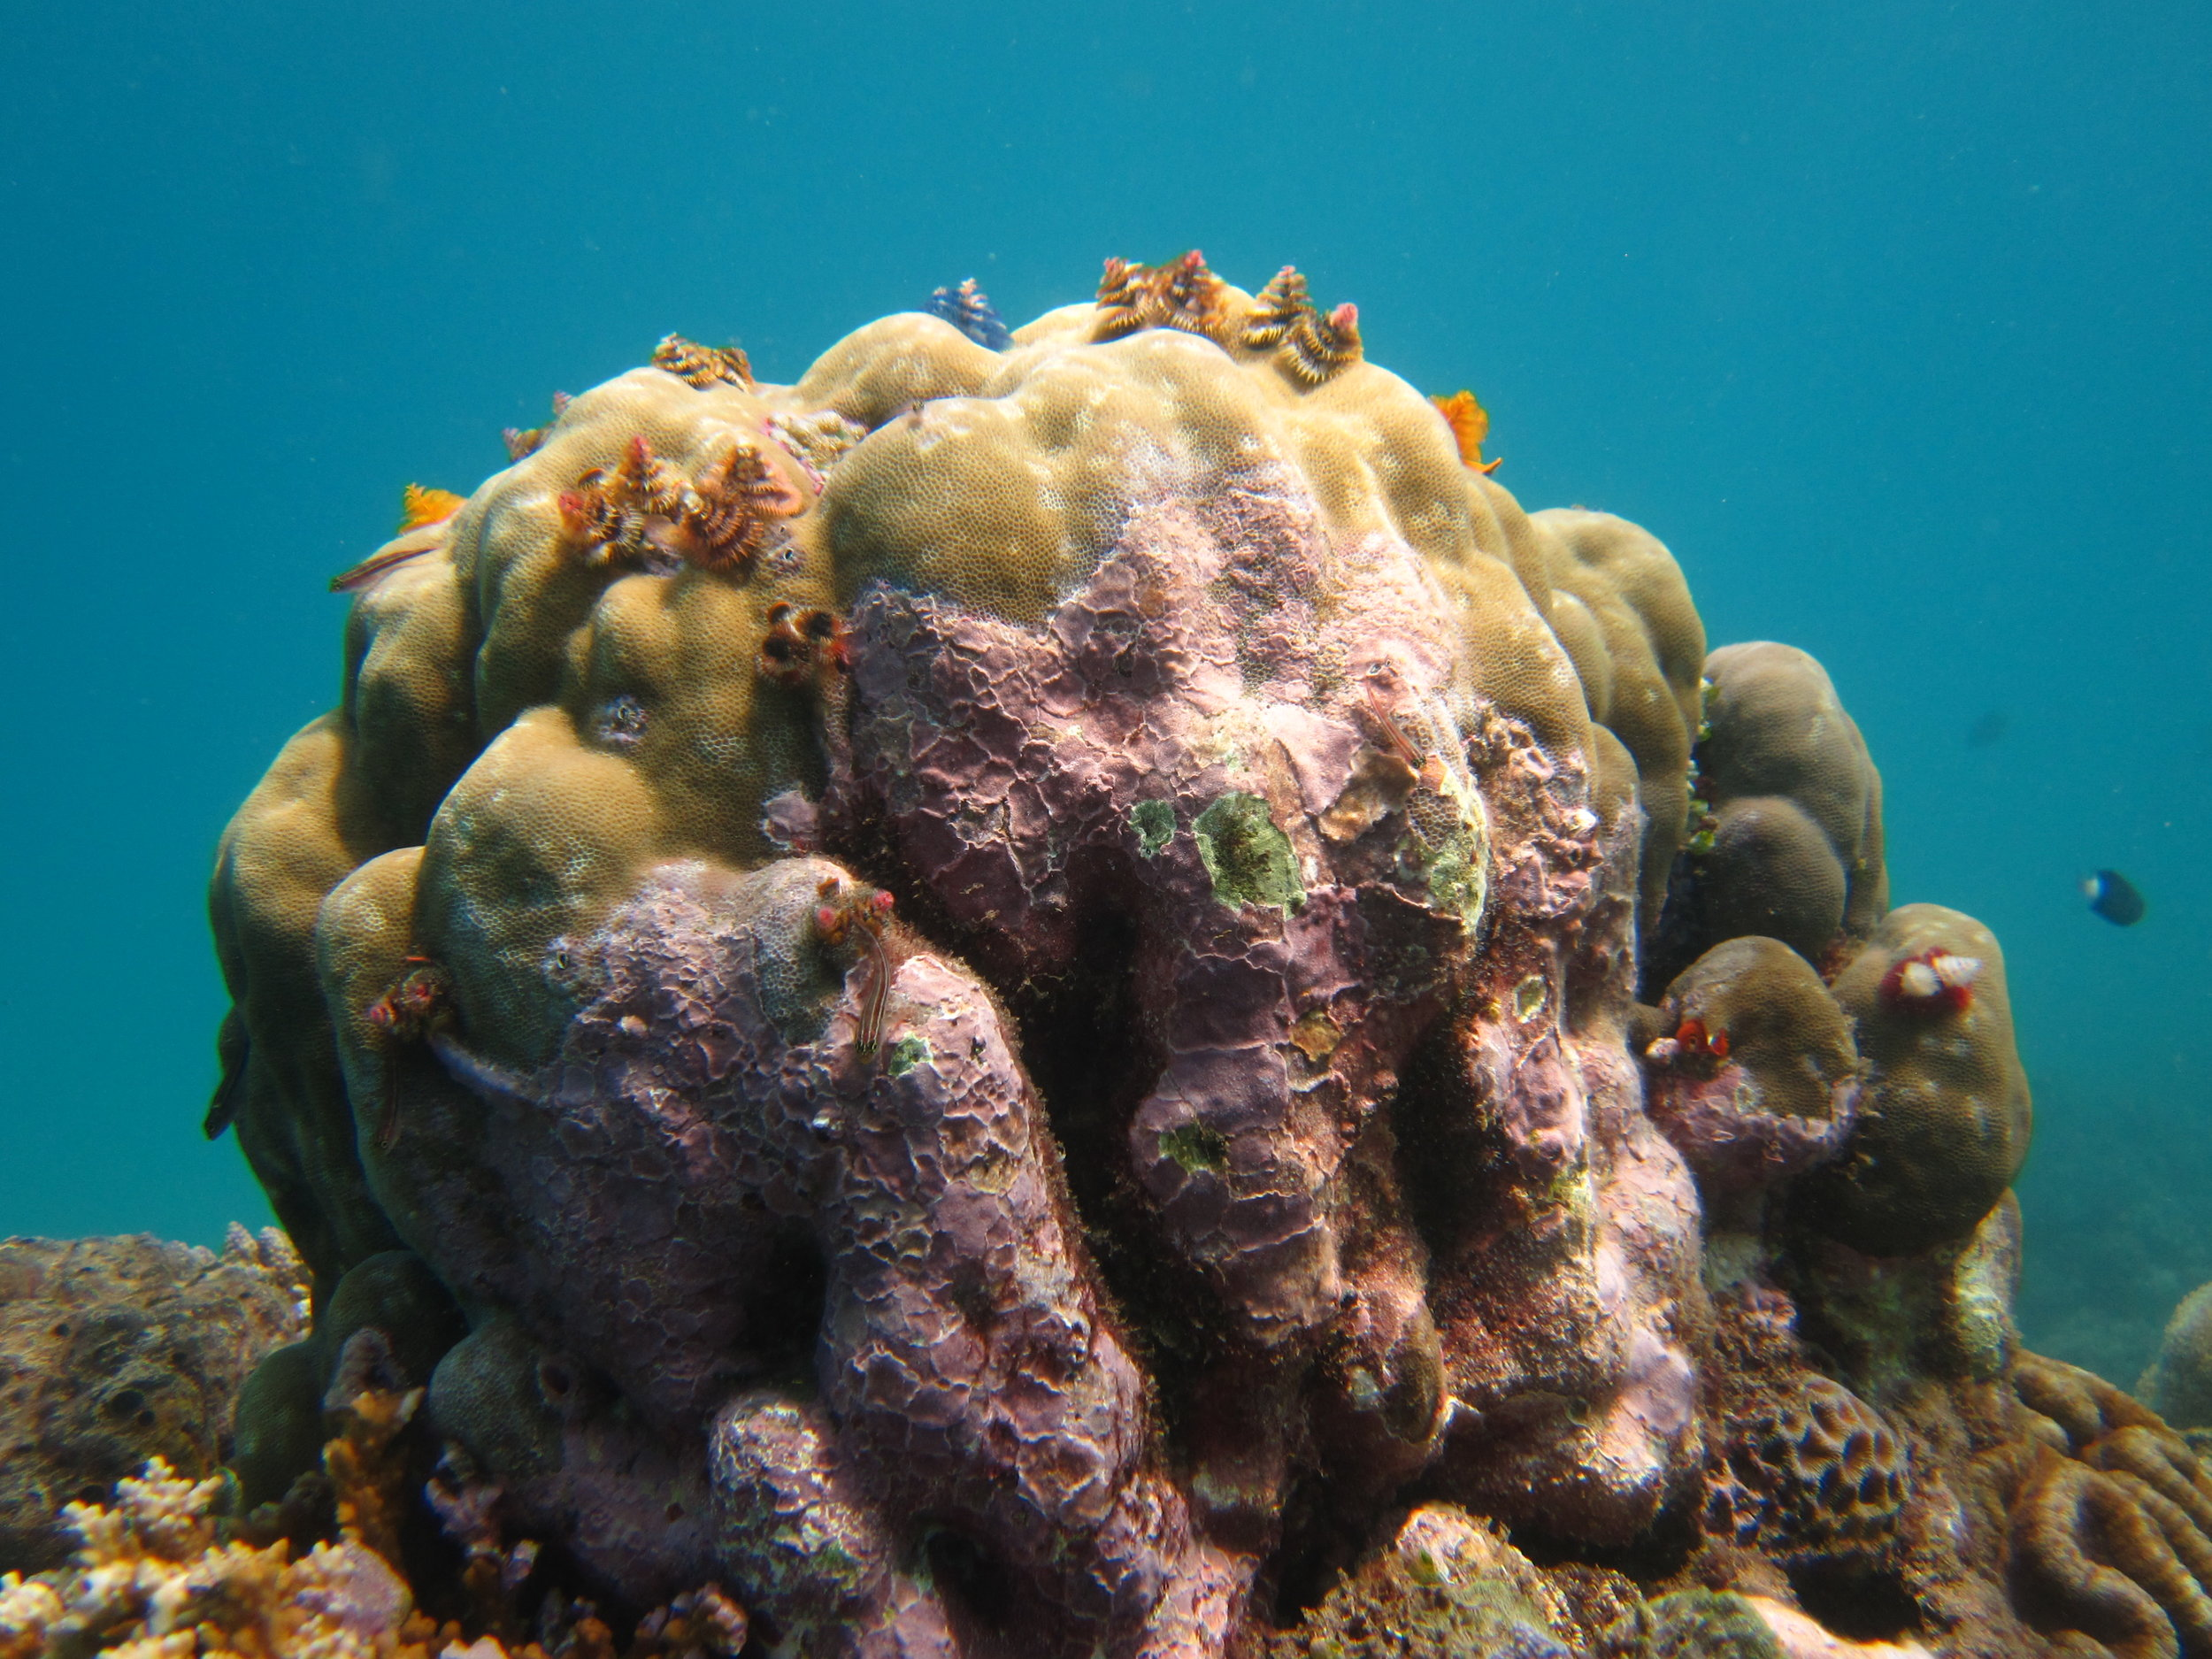 A  Porities  coral with Christmas tree worms and crustose coralline algae in Timor-Leste.